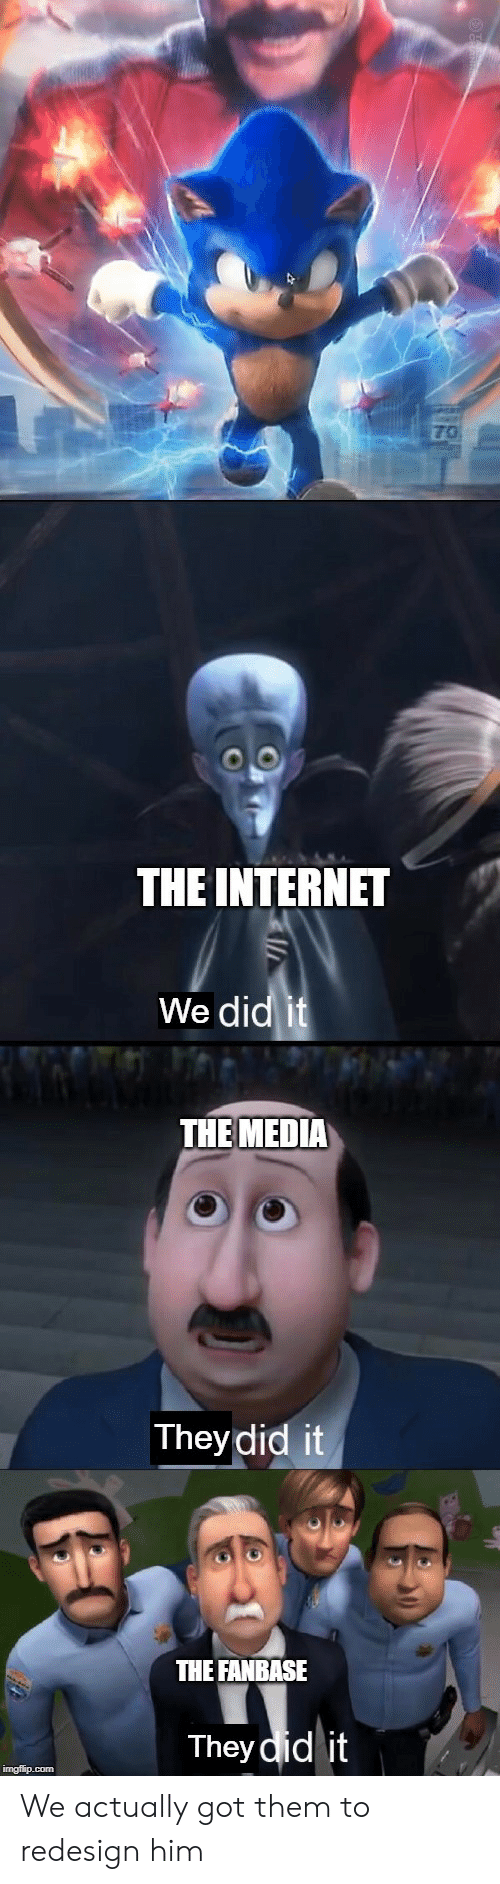 Internet, Got, and Media: THE INTERNET  We did it  THE MEDIA  They did it  THE FANBASE  They did it  imgflip.com We actually got them to redesign him